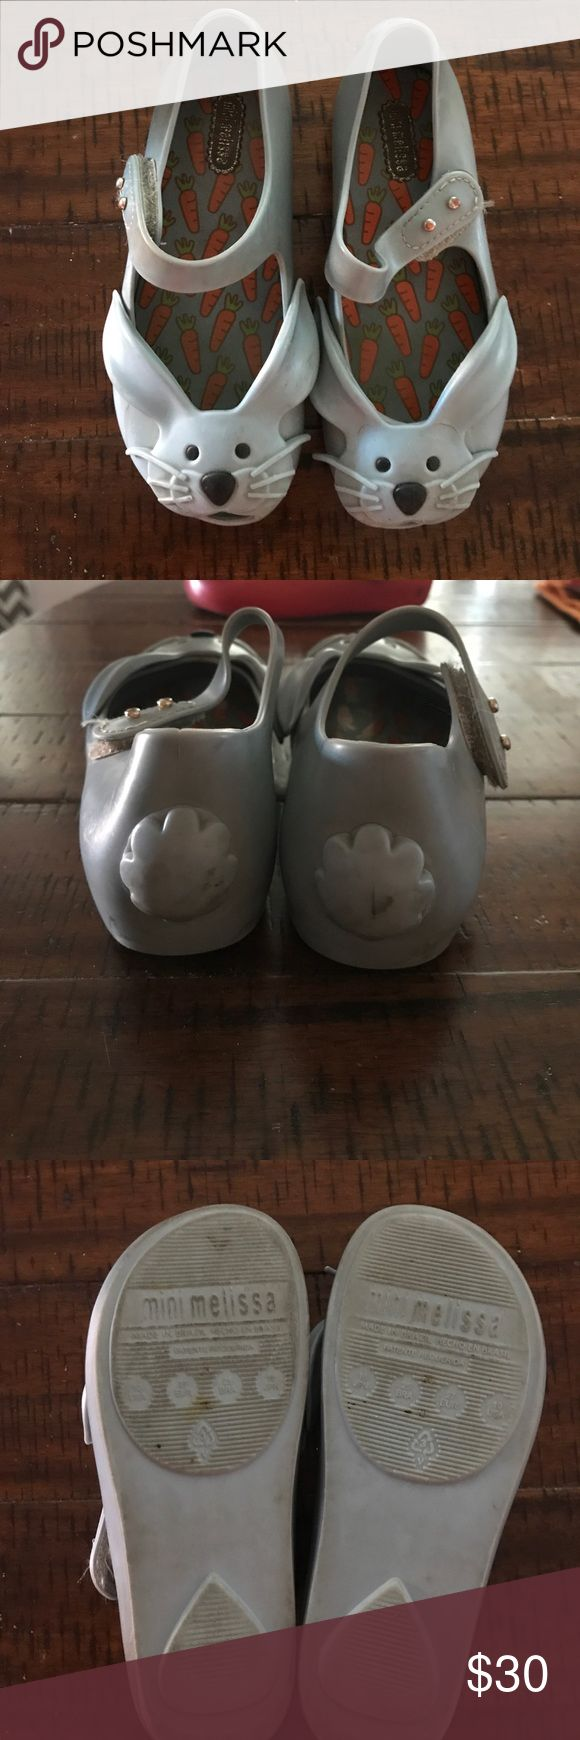 Mini Melissa size 10 toddler. Gray bunnies Gray bunnies mini Melissa shoes. Used condition, visible wear but no major damage. Some lines from wear near the bunny ears. And a little dirty but have tons of life left! Velcro is still good, inside is fairly clean. Mini Melissa Shoes Baby & Walker